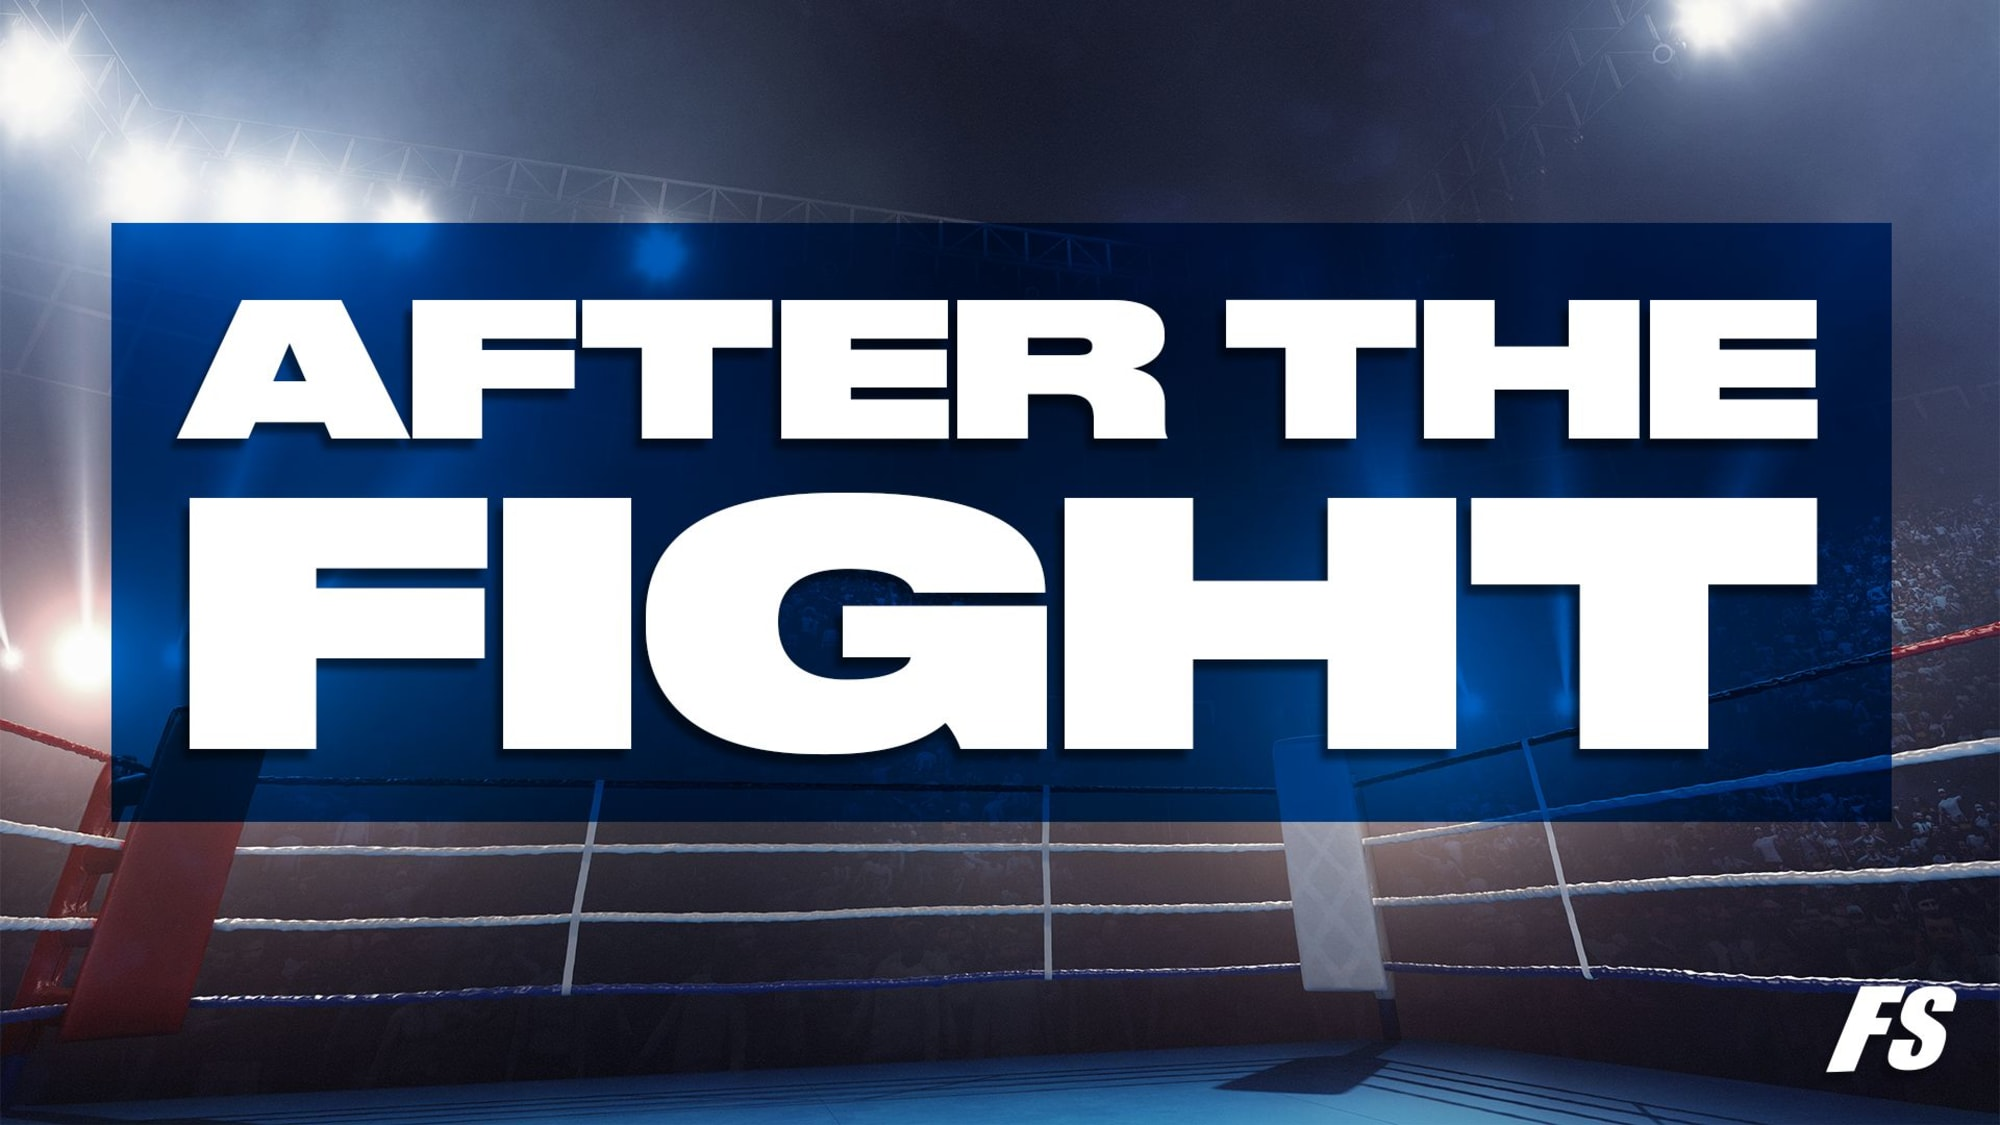 After the fight: The veiled smile of boxer Felix Verdejo